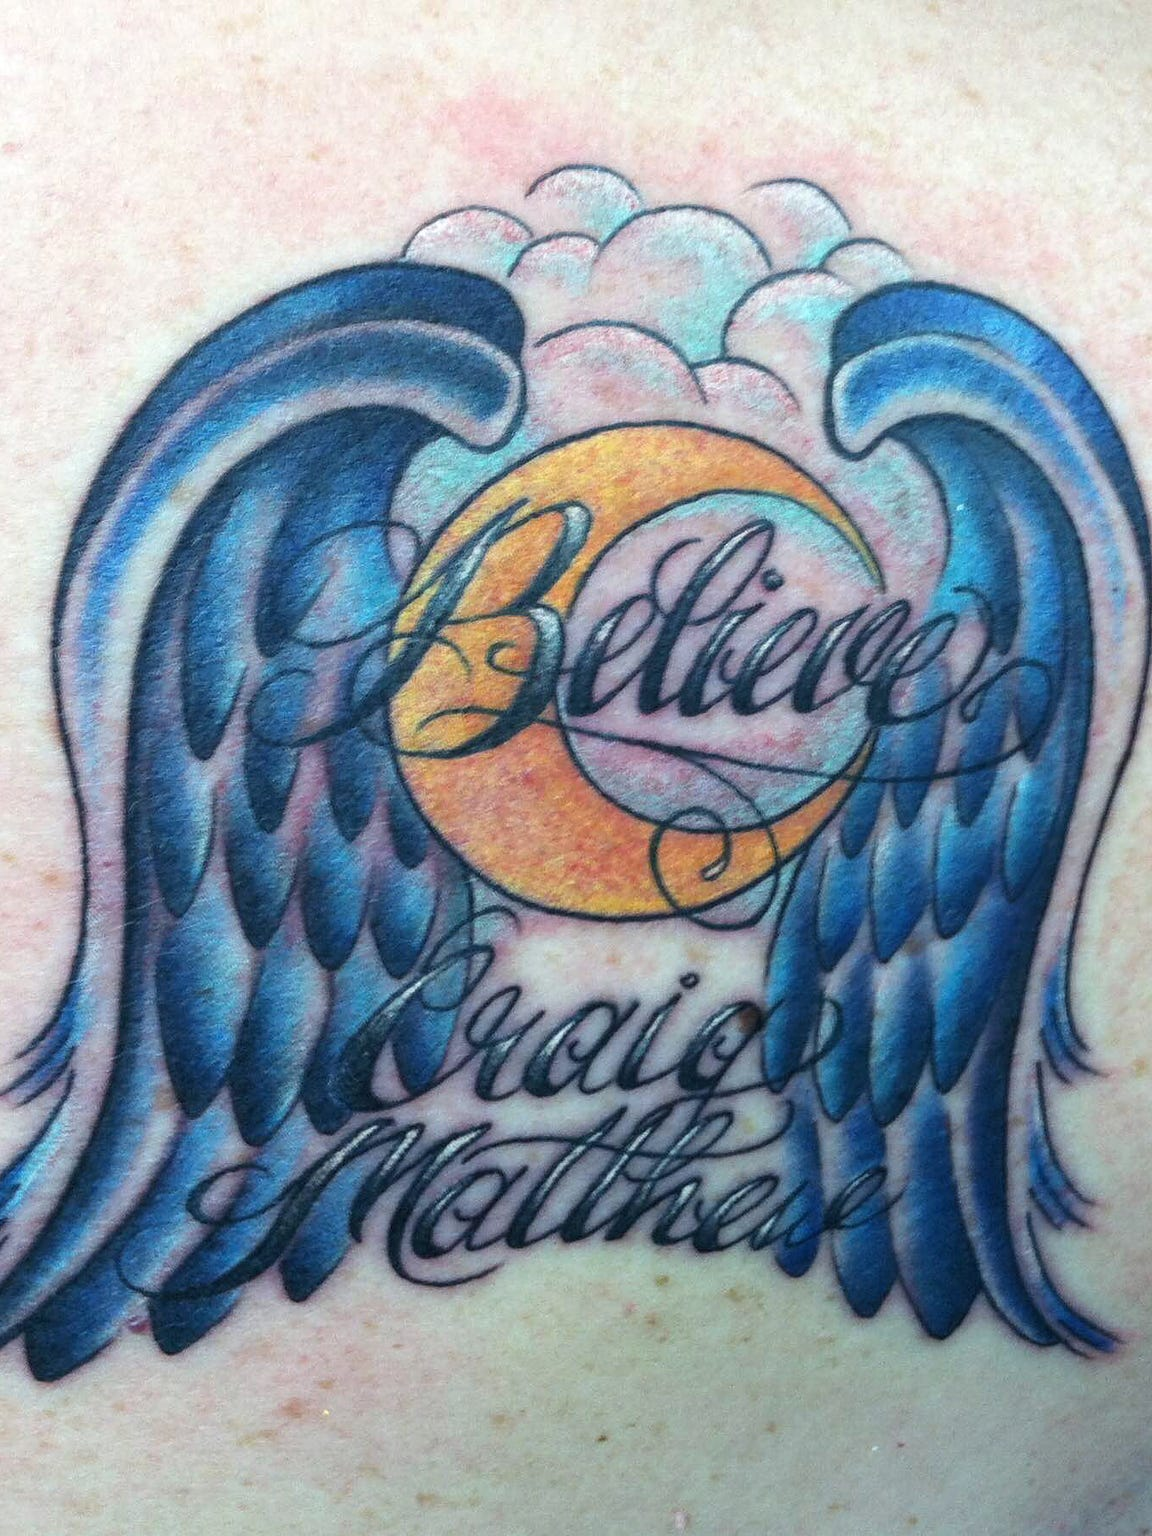 Cindi Byersmith has this tattoo on her back to commemorate